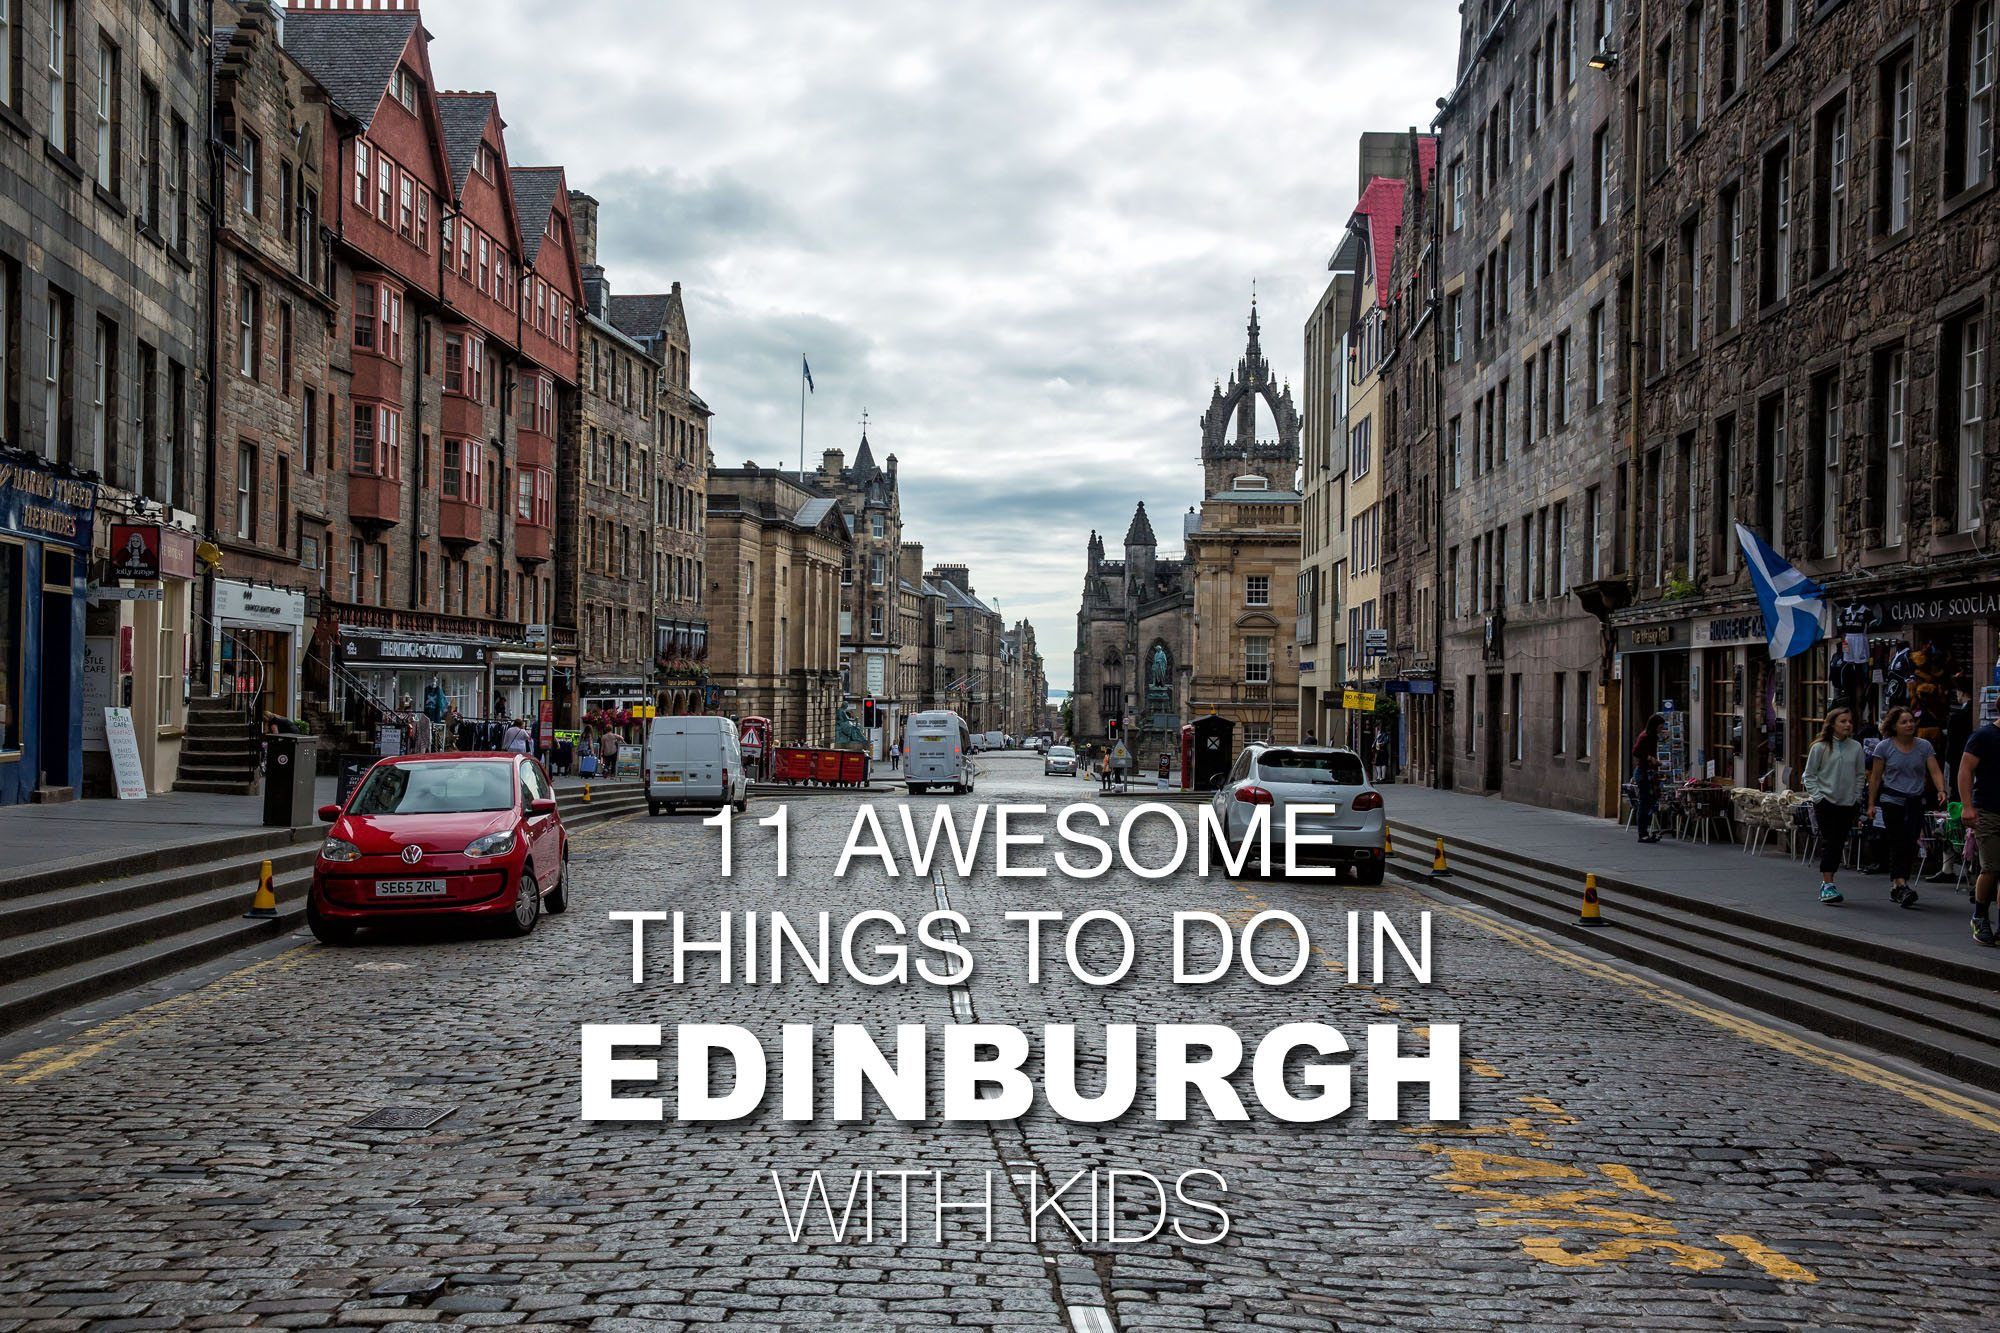 Awesome Things To Do In Edinburgh With Kids Earth Trekkers - 11 best things to see and do in edinburgh